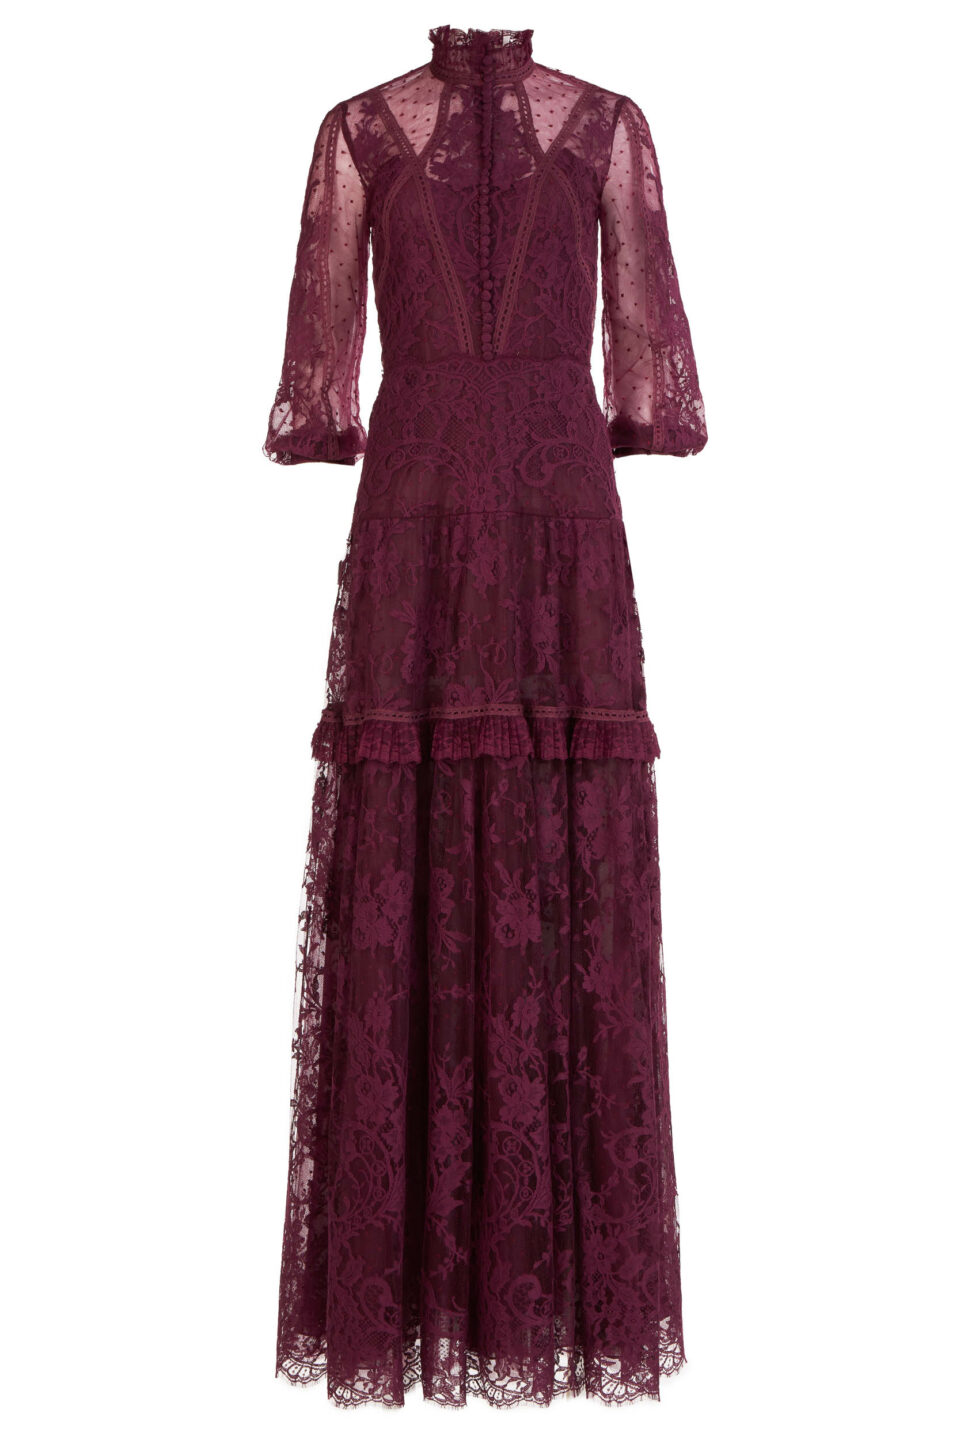 Anastasia FW2151 cherry red Dotted French Tulle & French Lace Gown with Buttoned Bodice & Ruffled Neck